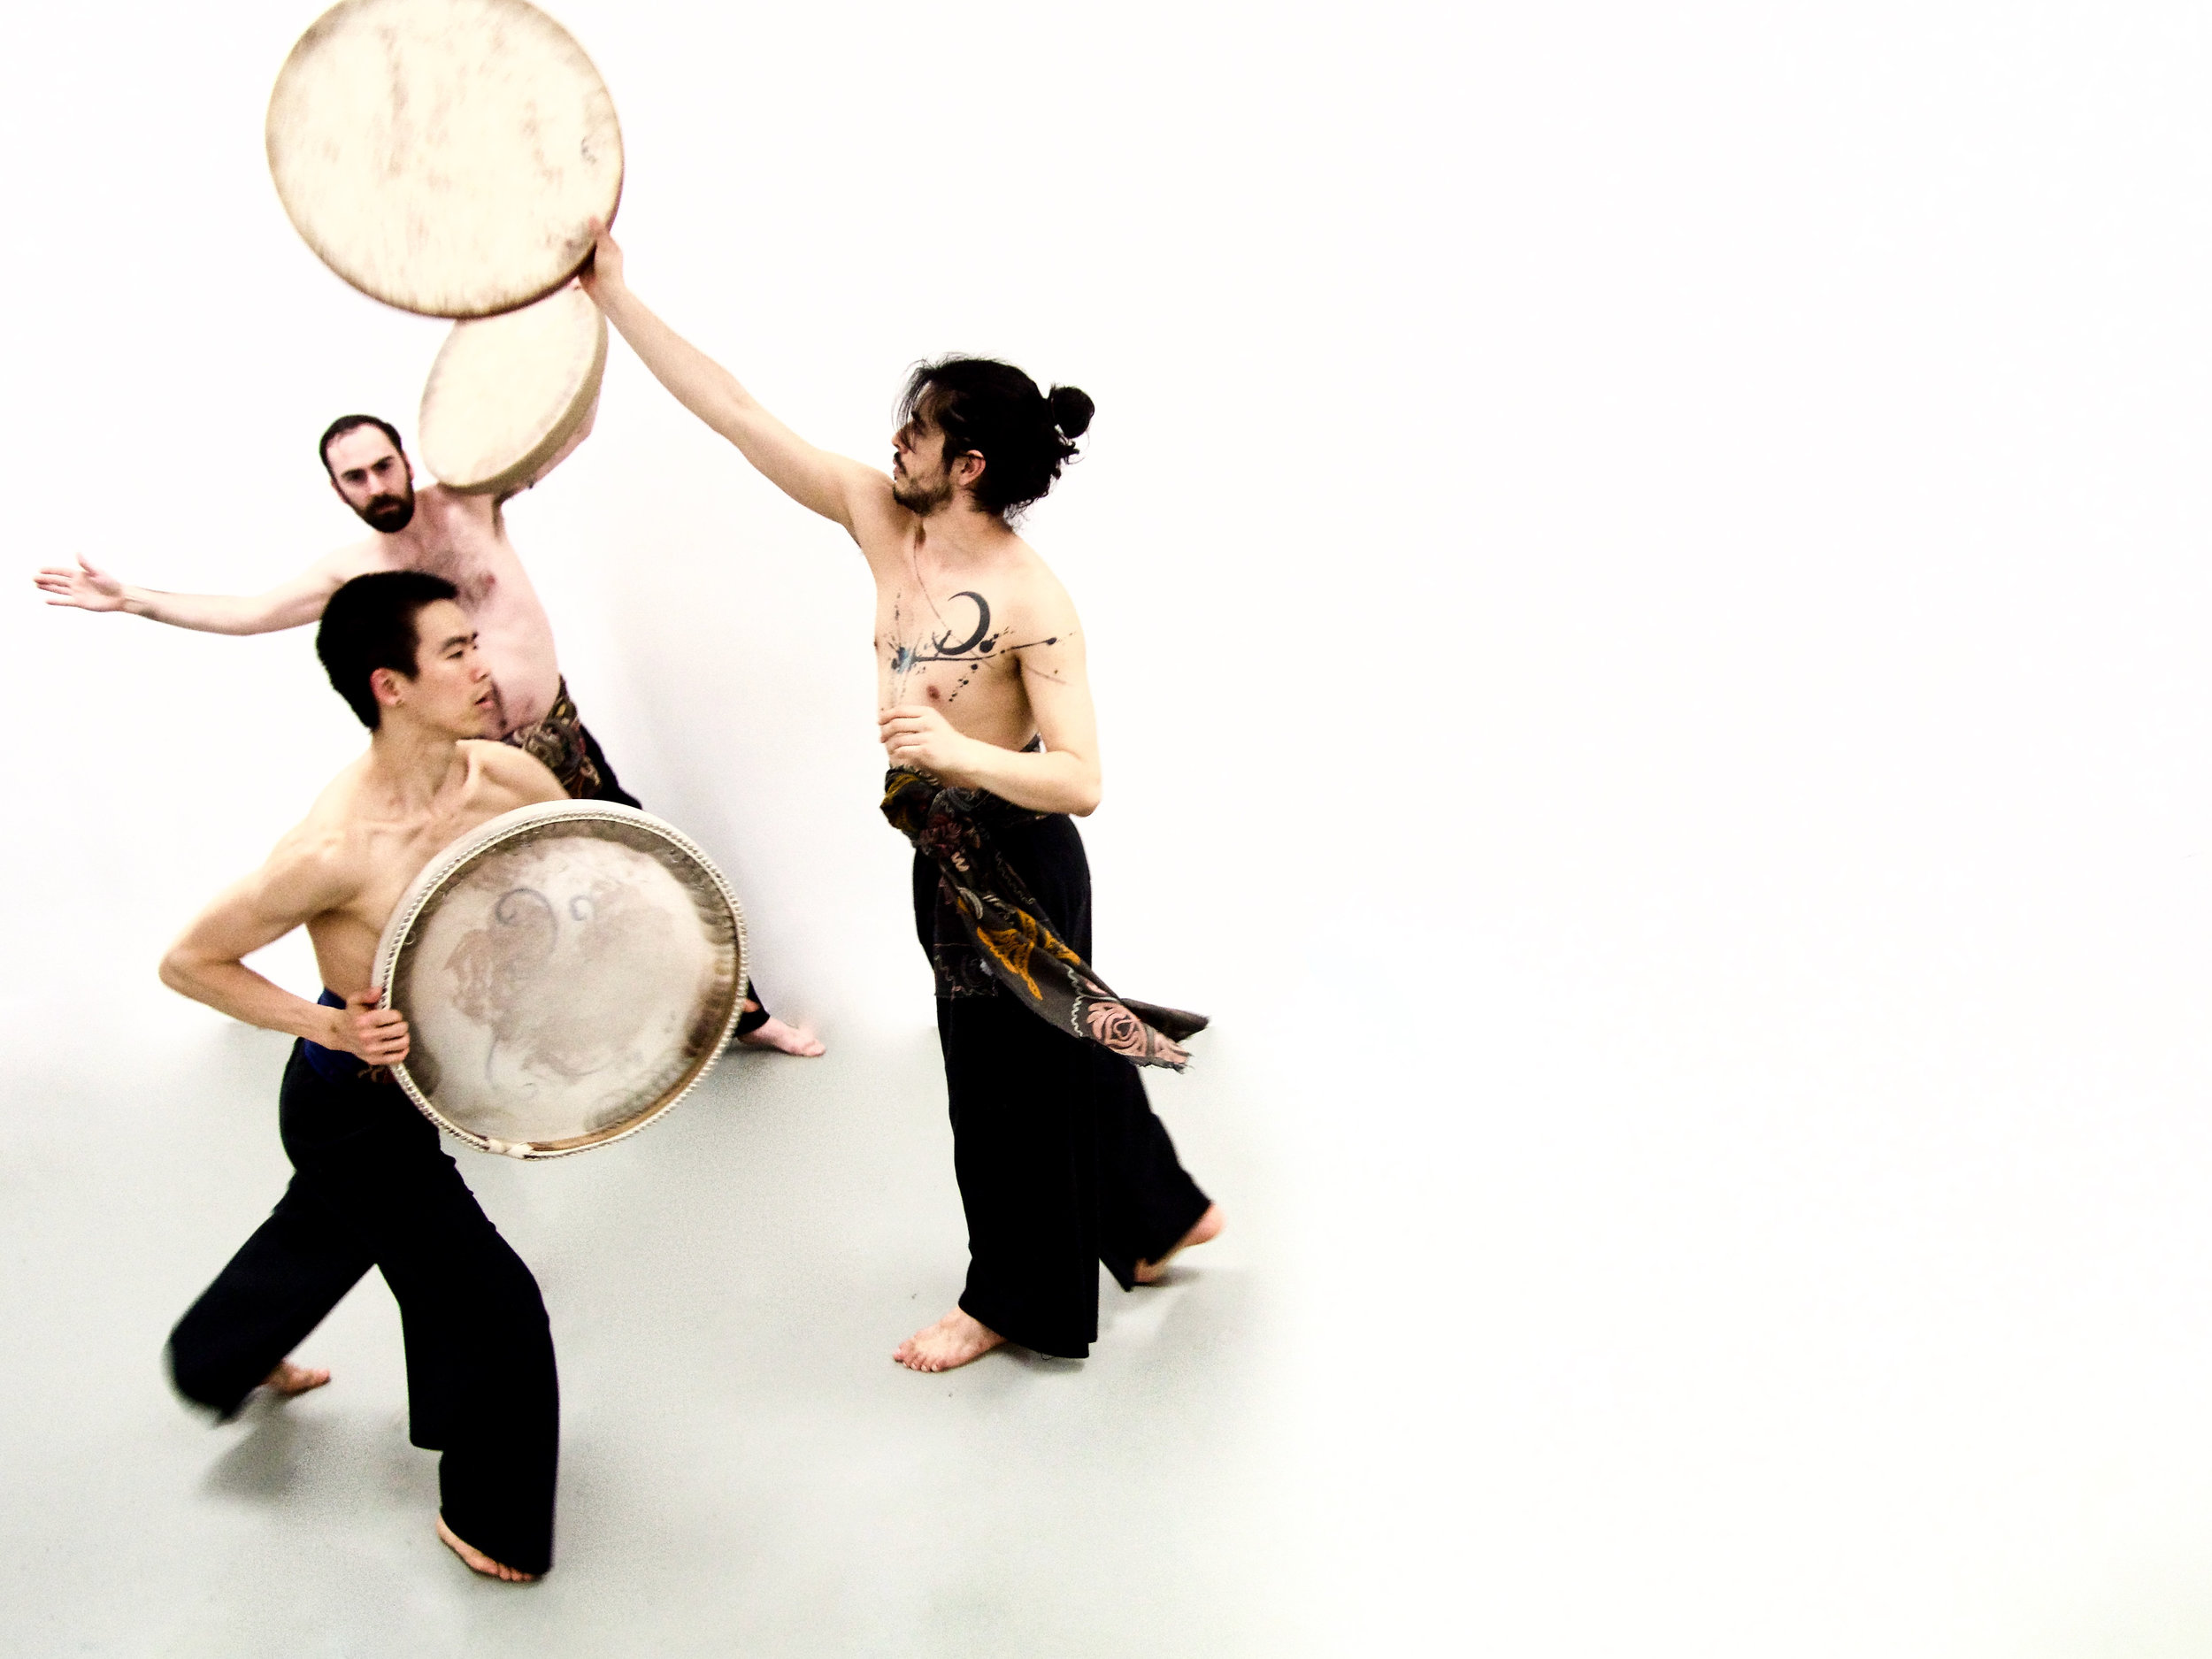 Mateo Galindo Torres, Luke Garwood, Yiming Cai in Sashar Zarif's Kismet: Opposing Destiny. Photo by Sashar Zarif